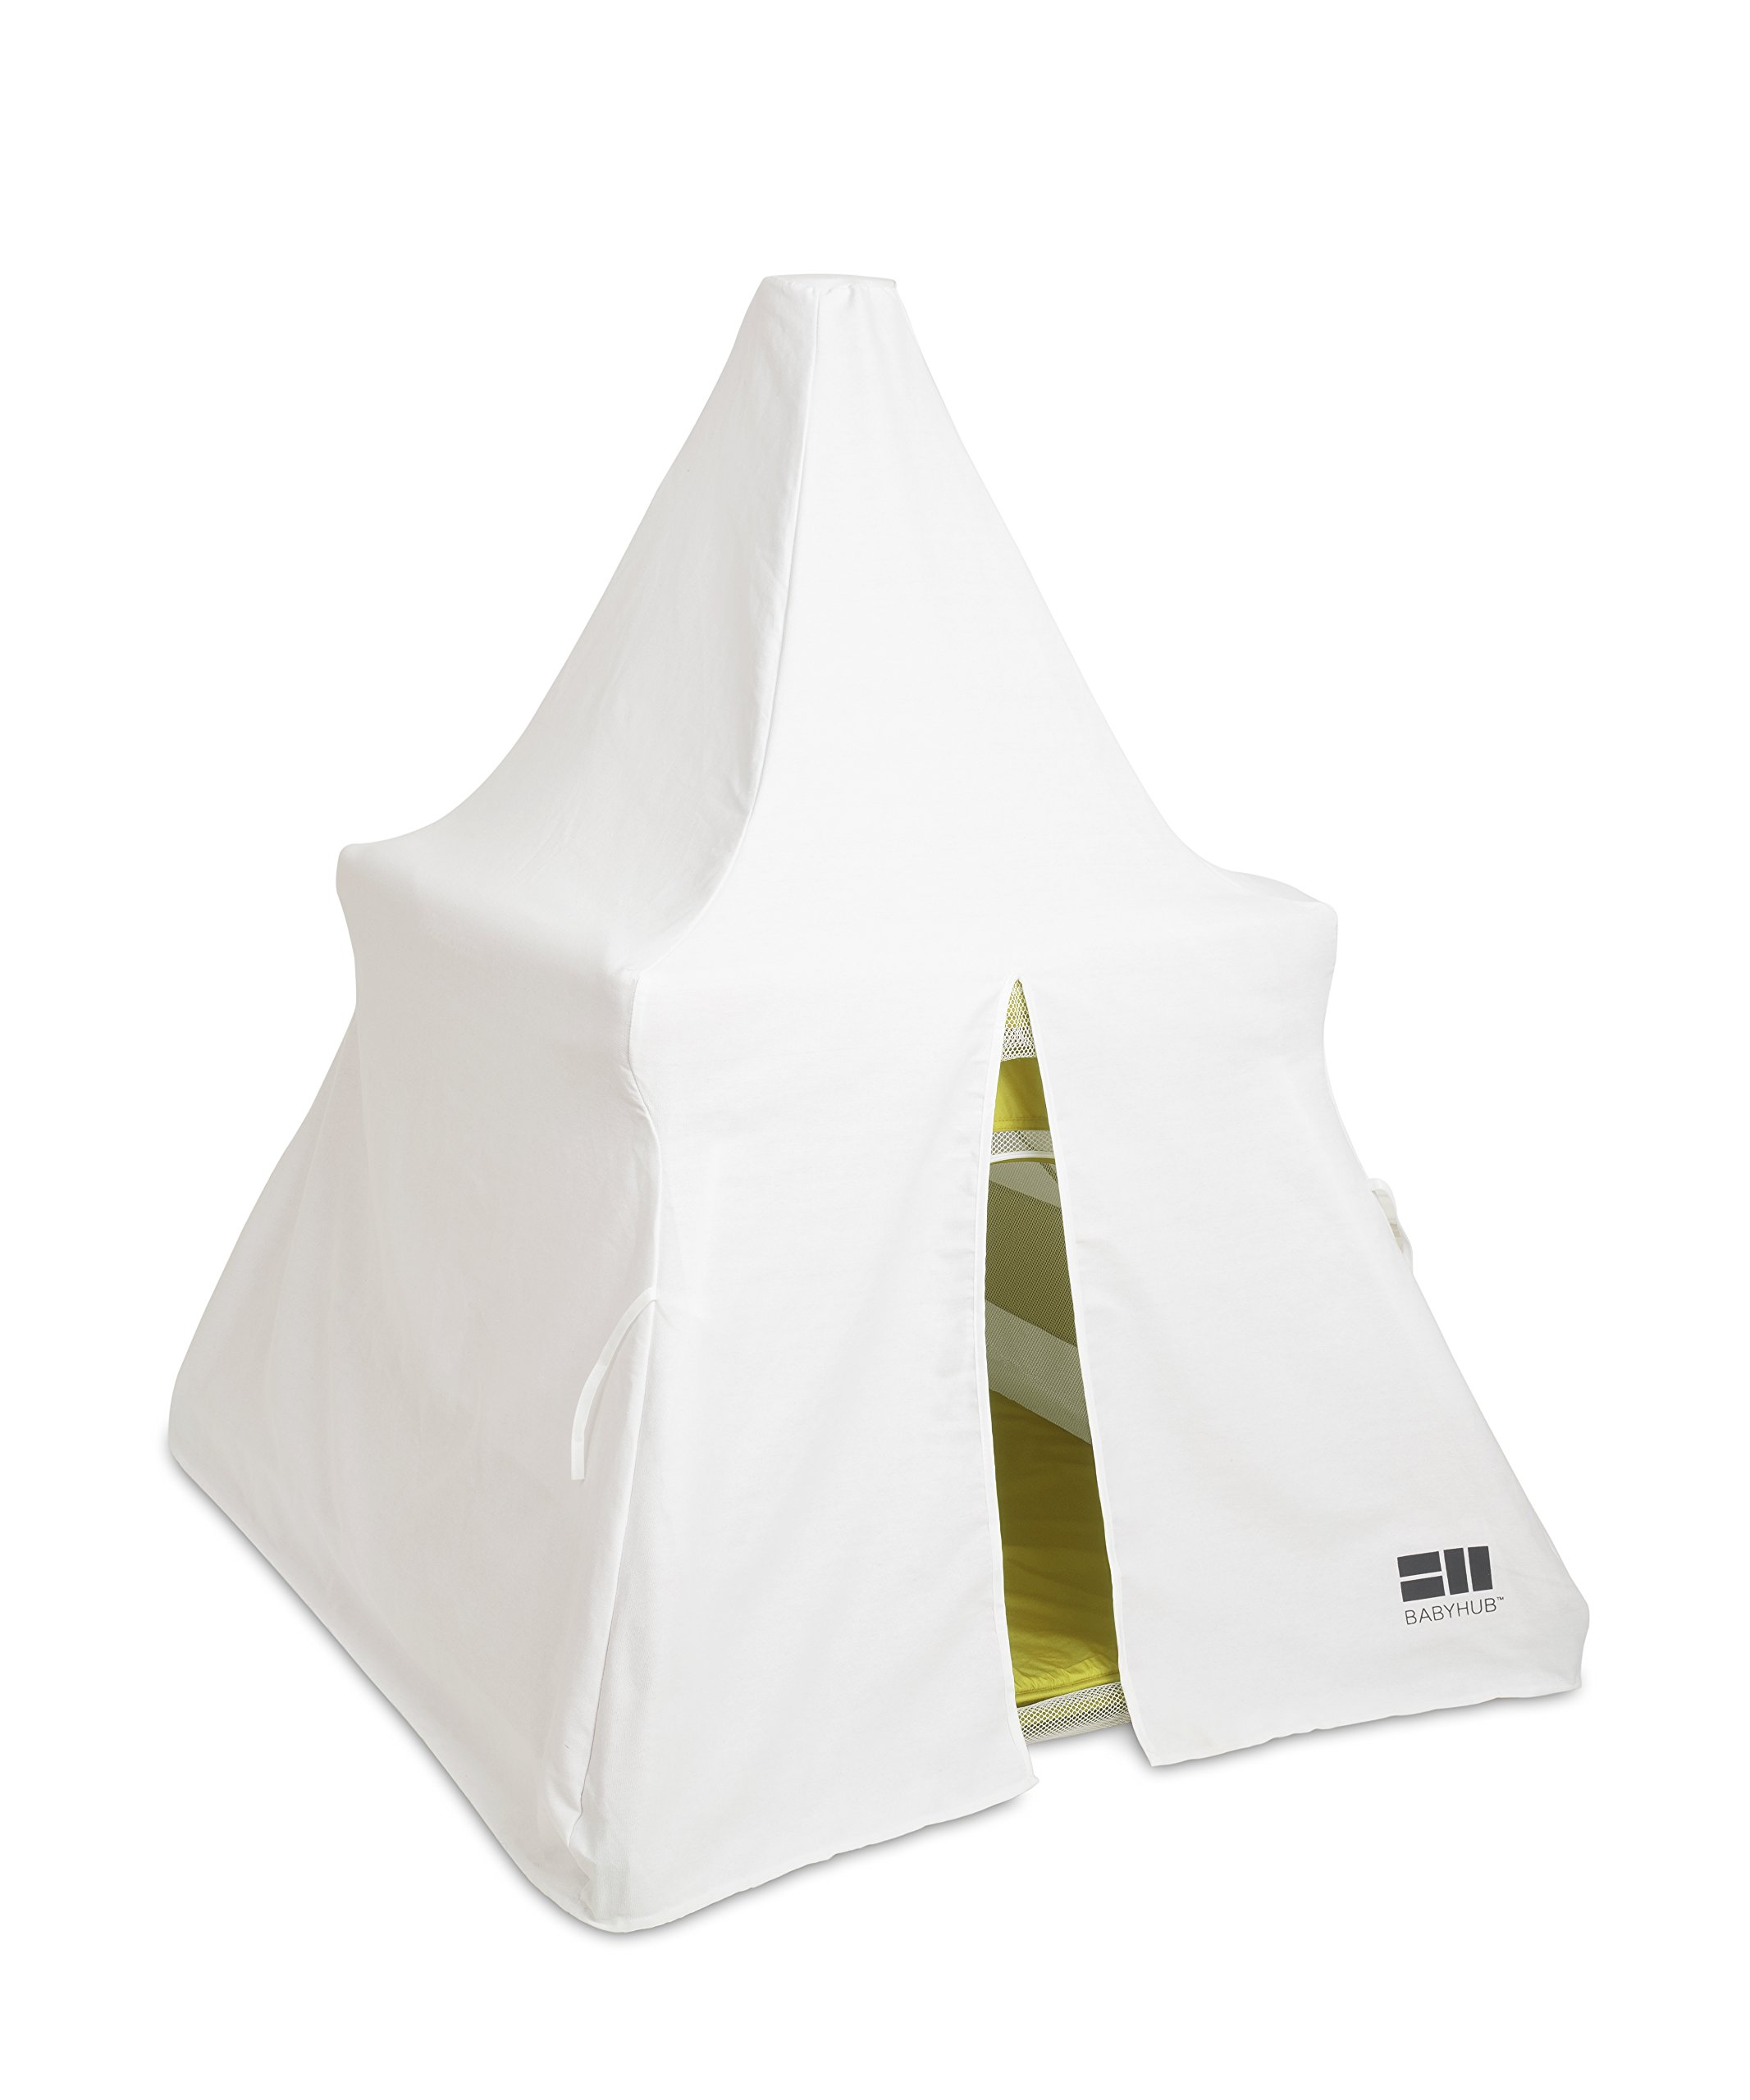 BabyHub SleepSpace Travel Cot with Mosquito Net, Green BabyHub Three cots in one; use as a travel cot, mosquito proof space and reuse as a play tepee Includes cotton canvas tepee cover Can be set up and moved even while holding a baby. Dimensions Open - L 116cm x W 960cm x H 122cm (when opened). Dimensions Closed - 83cm H x 22cm x 42cm (in bag) 3